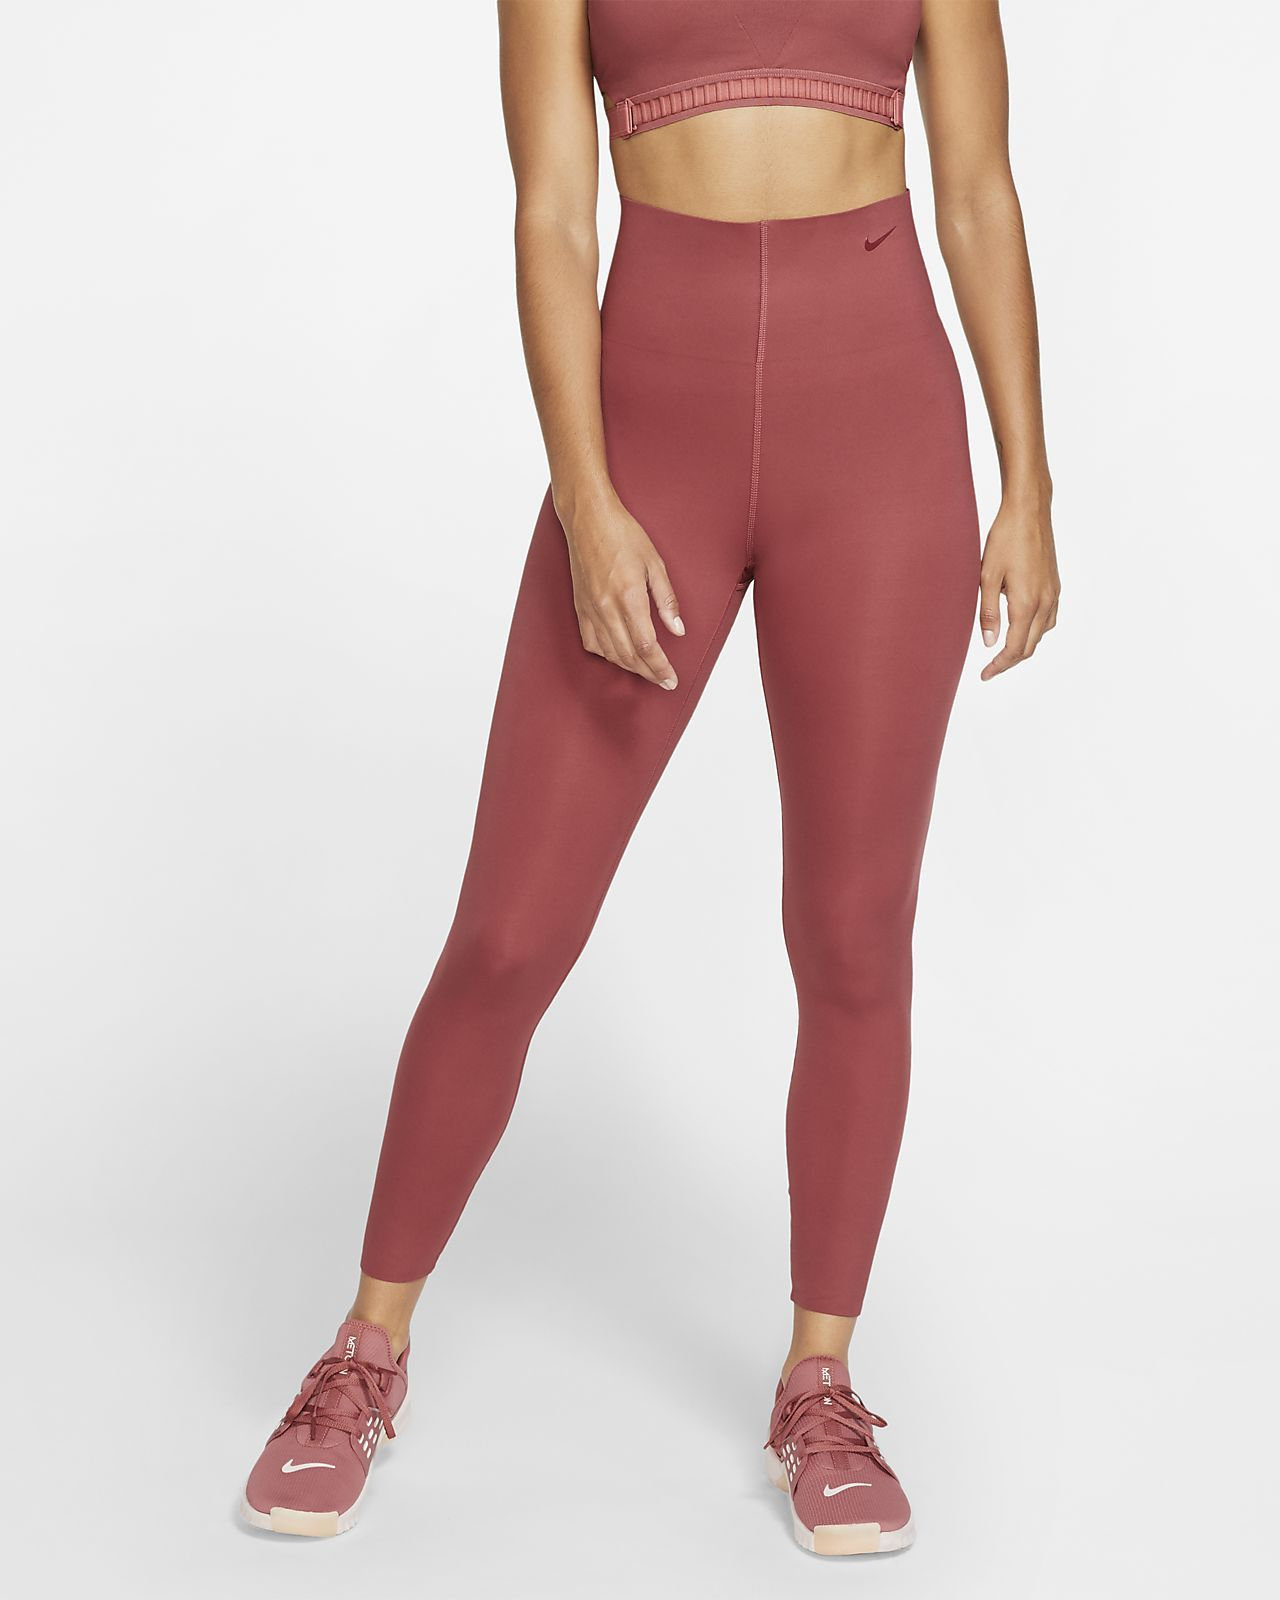 Nike Sculpt Luxe Women S 7 8 Tights Nike Com In 2020 Fitness Fashion Athletic Outfits Women